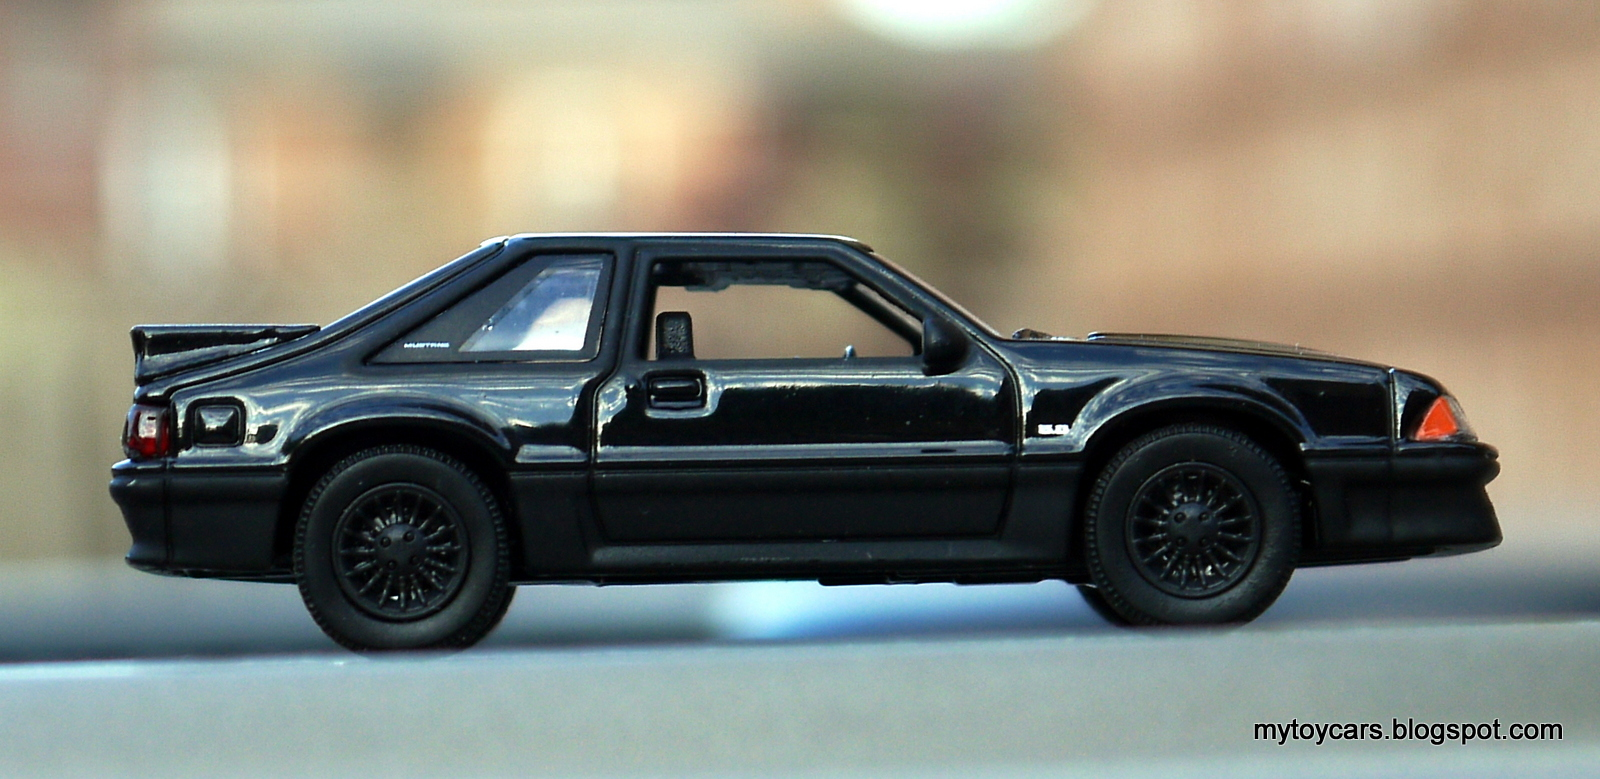 Greenlight 1989 ford mustang gt